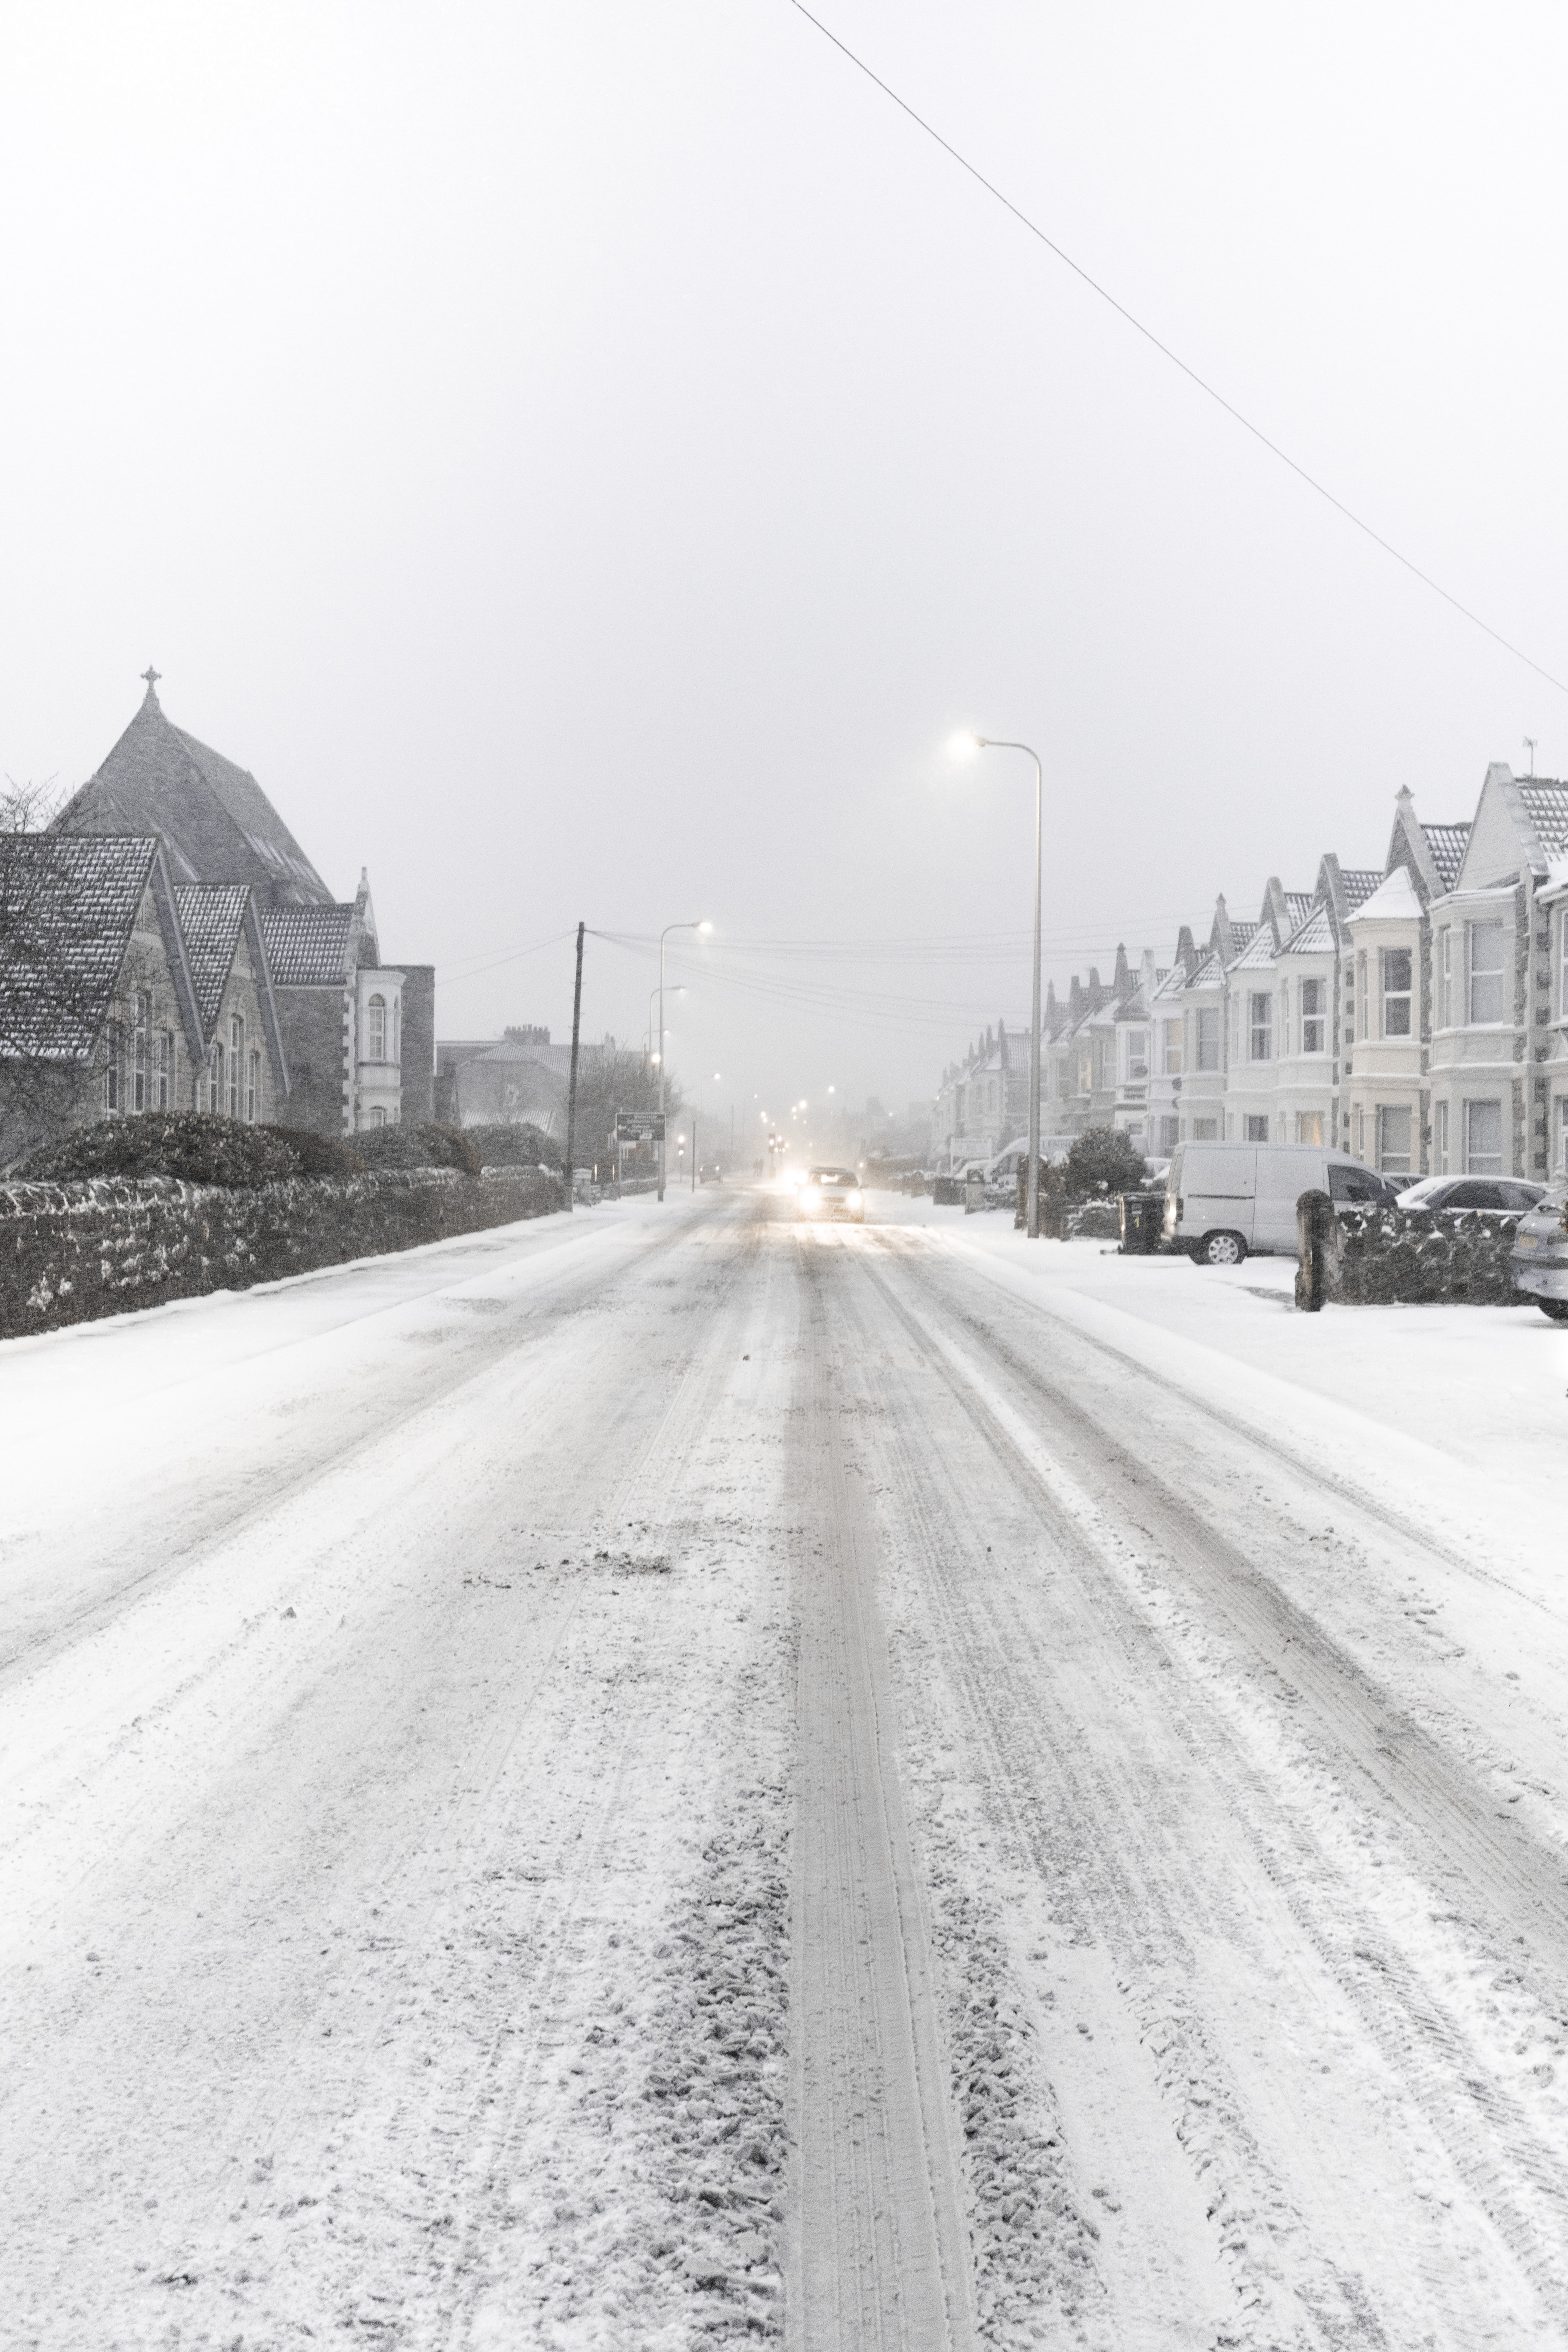 snow covered road between village and vehicles